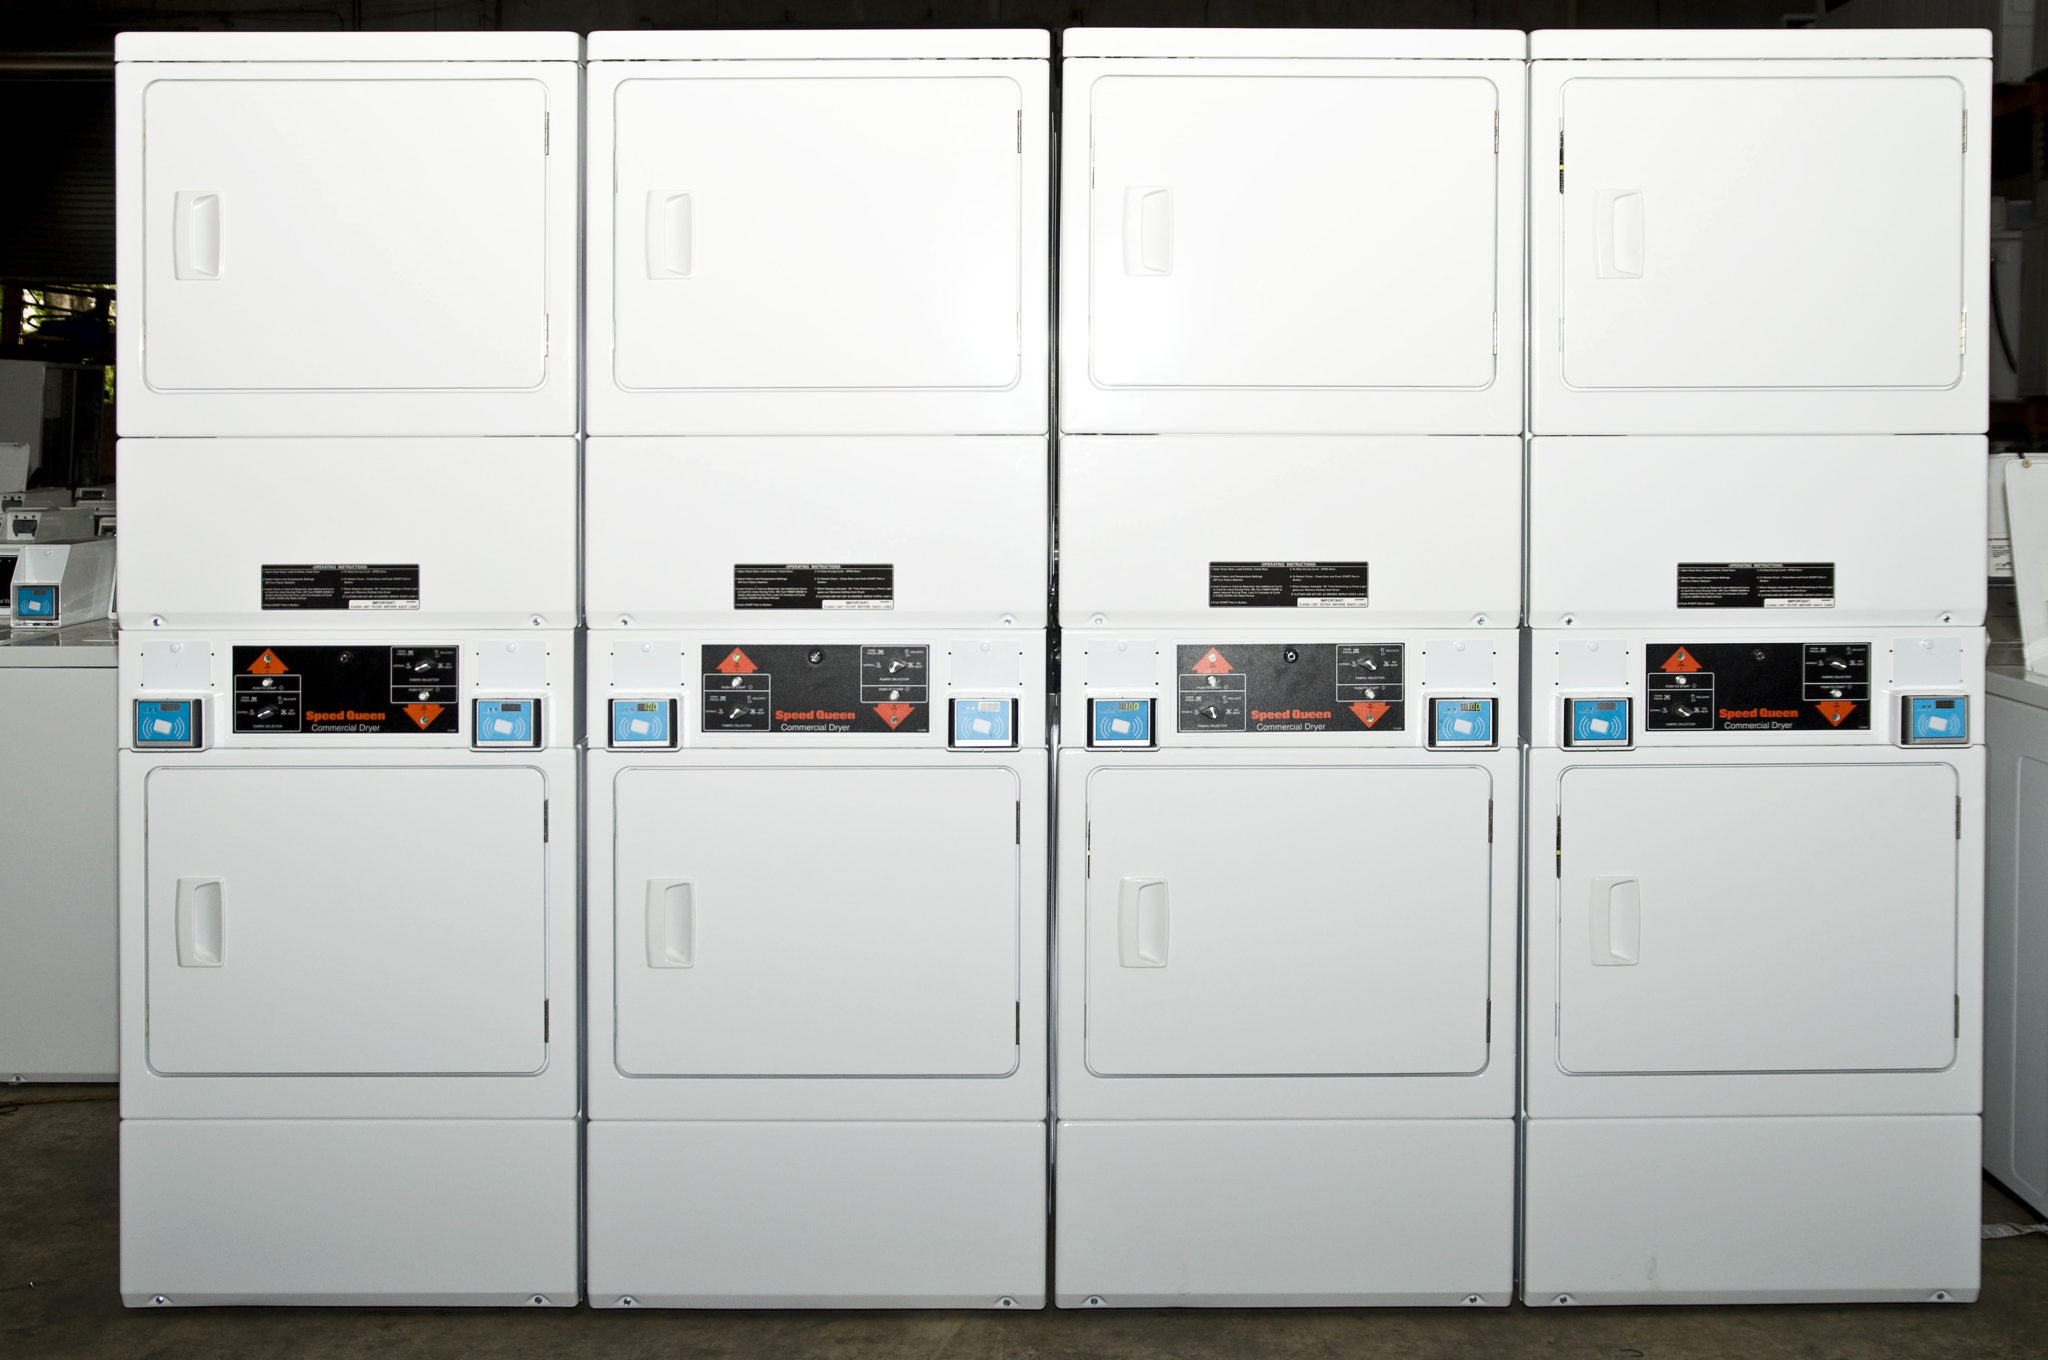 commercial stack dryers